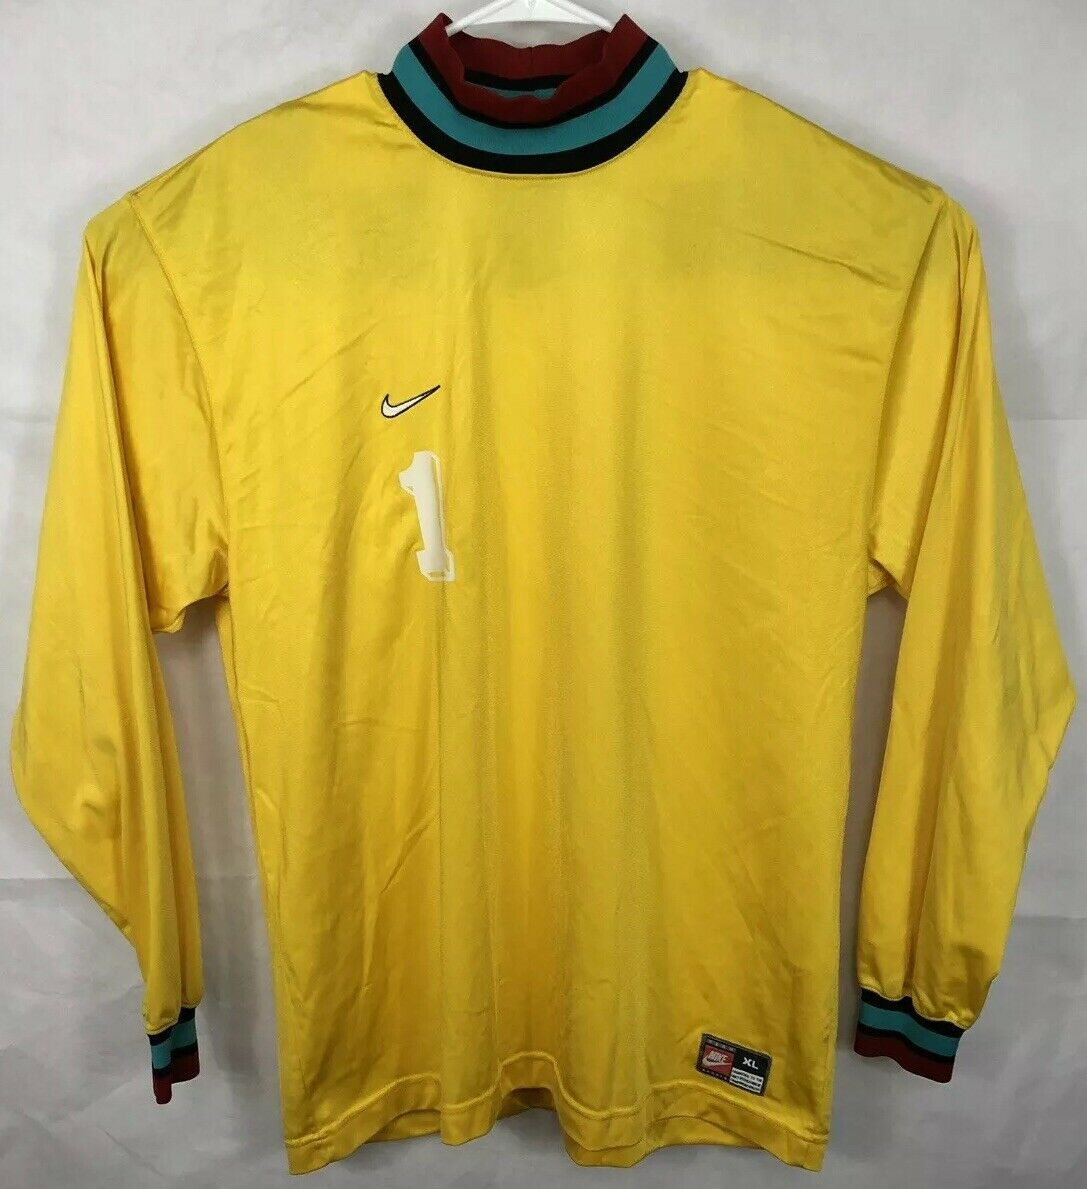 1141130c75a VTG NIKE Team Sports Soccer Jersey Long Sleeve Goalie Yellow Teal XL White  Tag